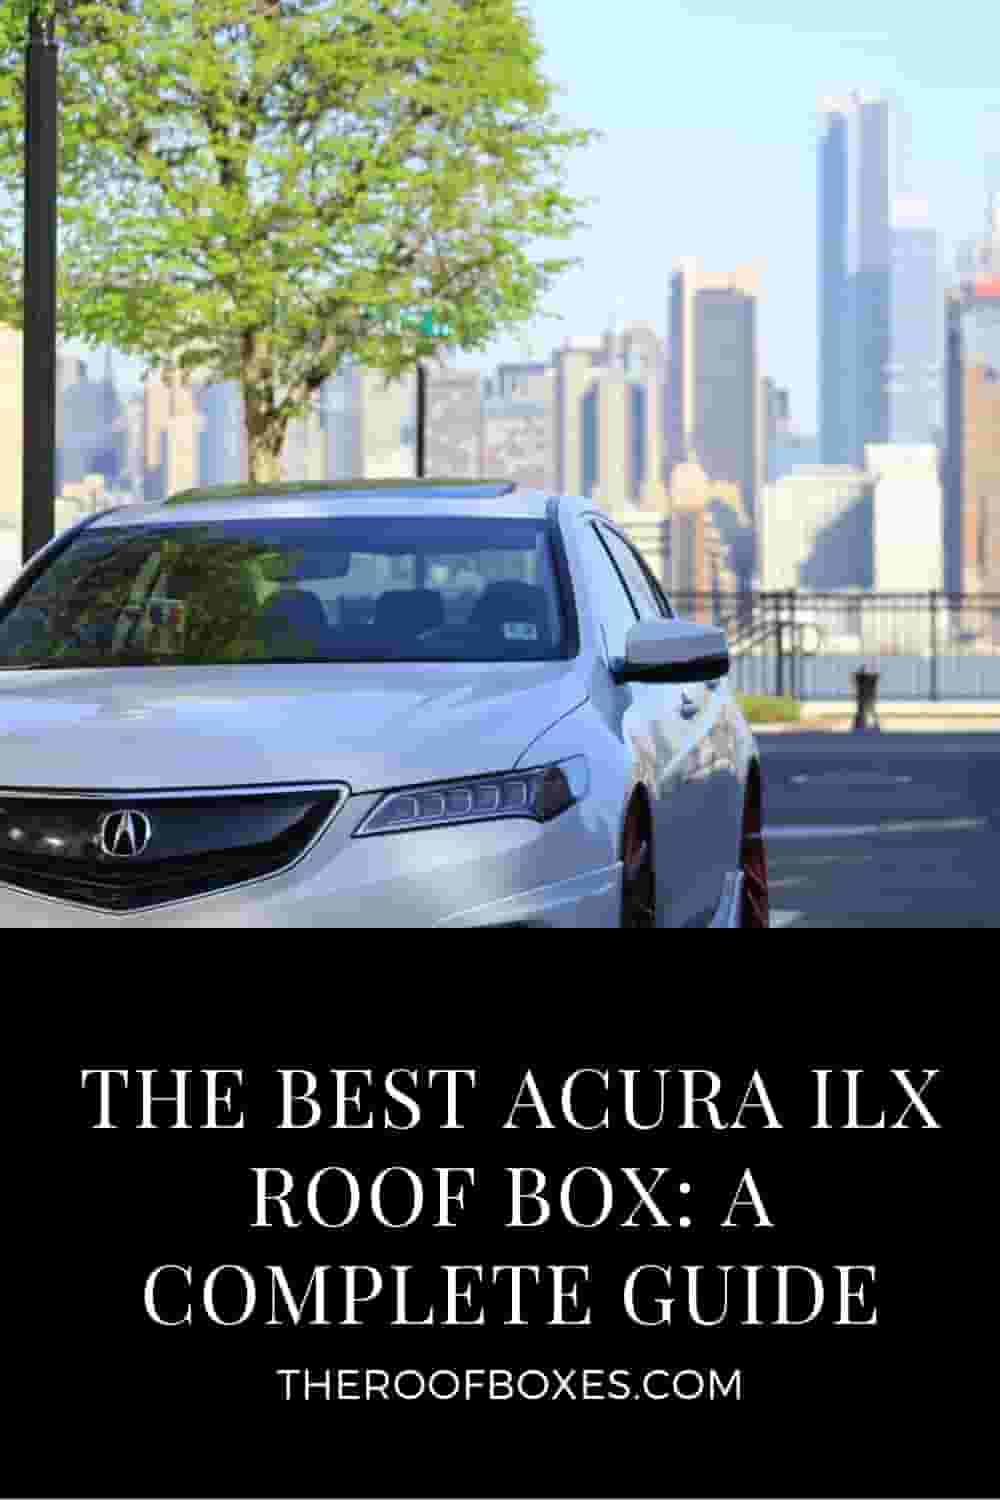 Acura ILX Roof Box– Reviews and Comparison